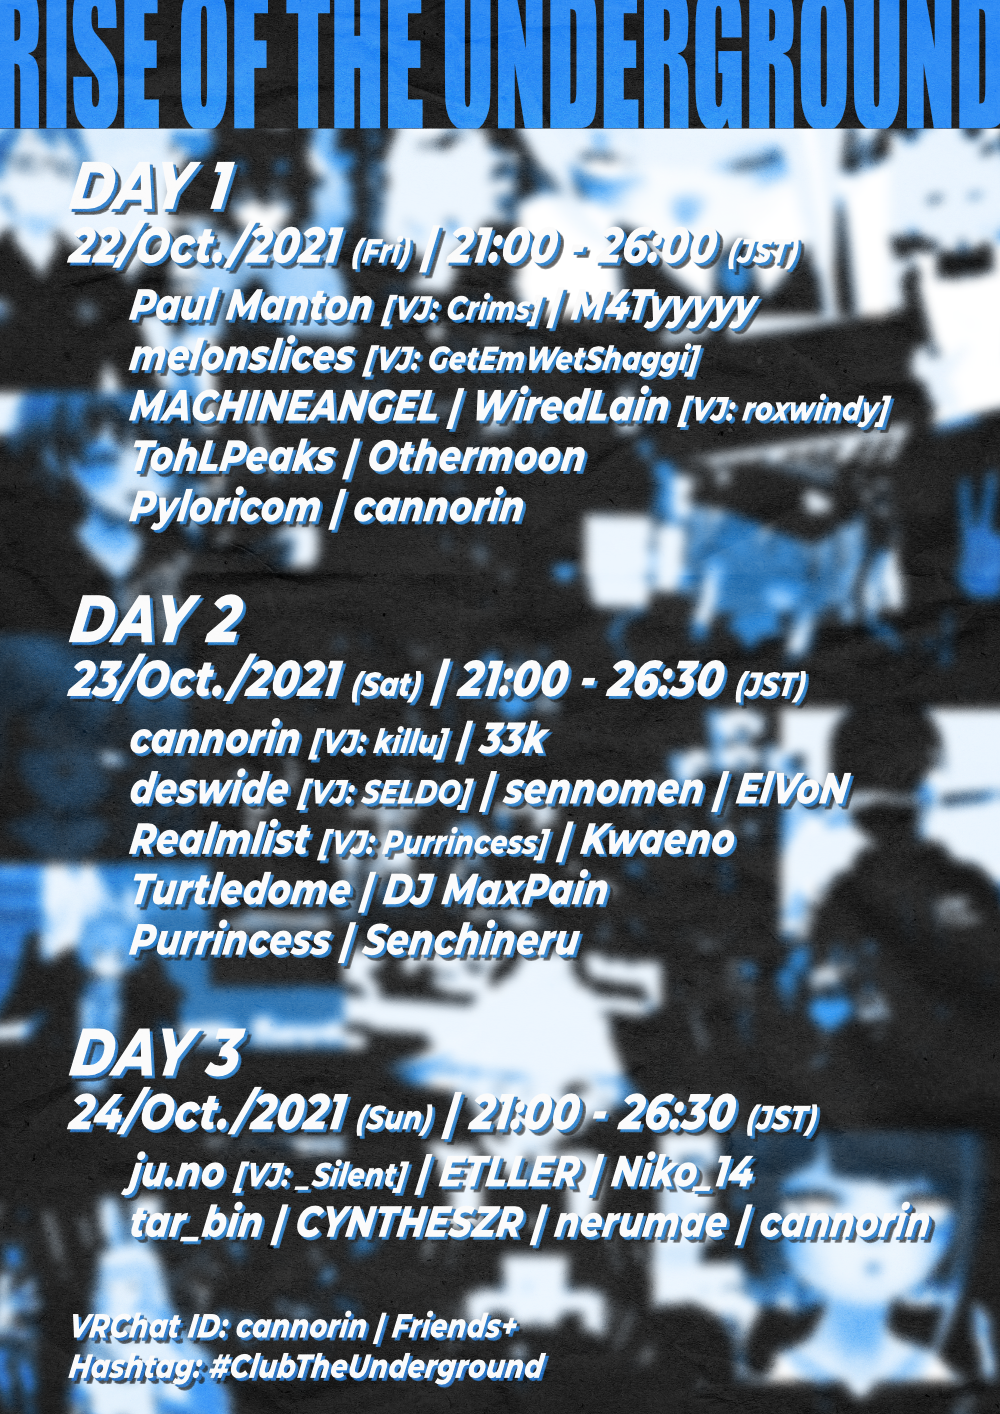 Flyer for CLUB: THE UNDERGROUND 2ND ANNIVERSARY EVENT (DAY 2)